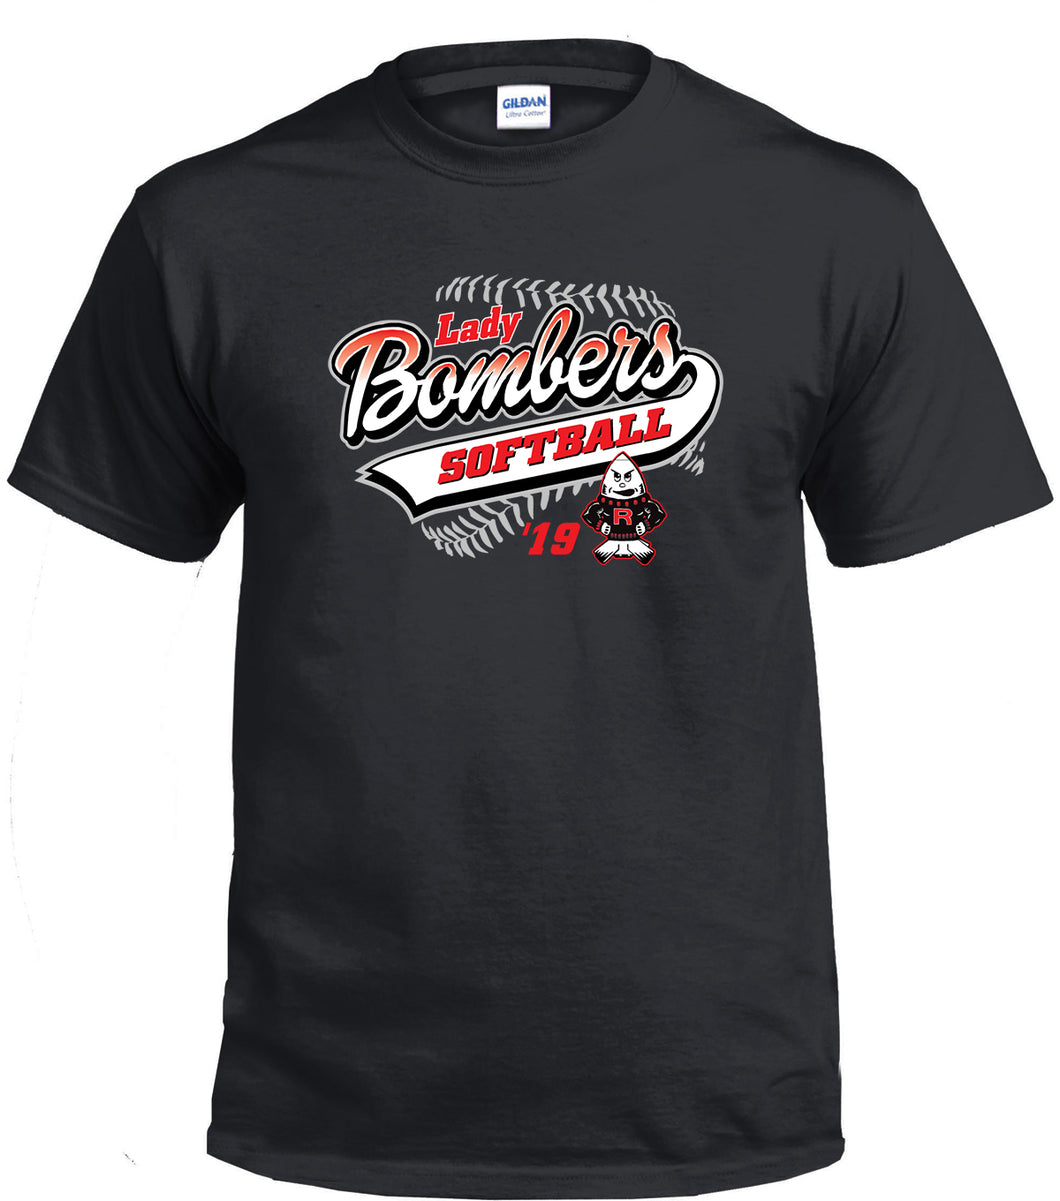 Bomber Softball DryBlend T-Shirt